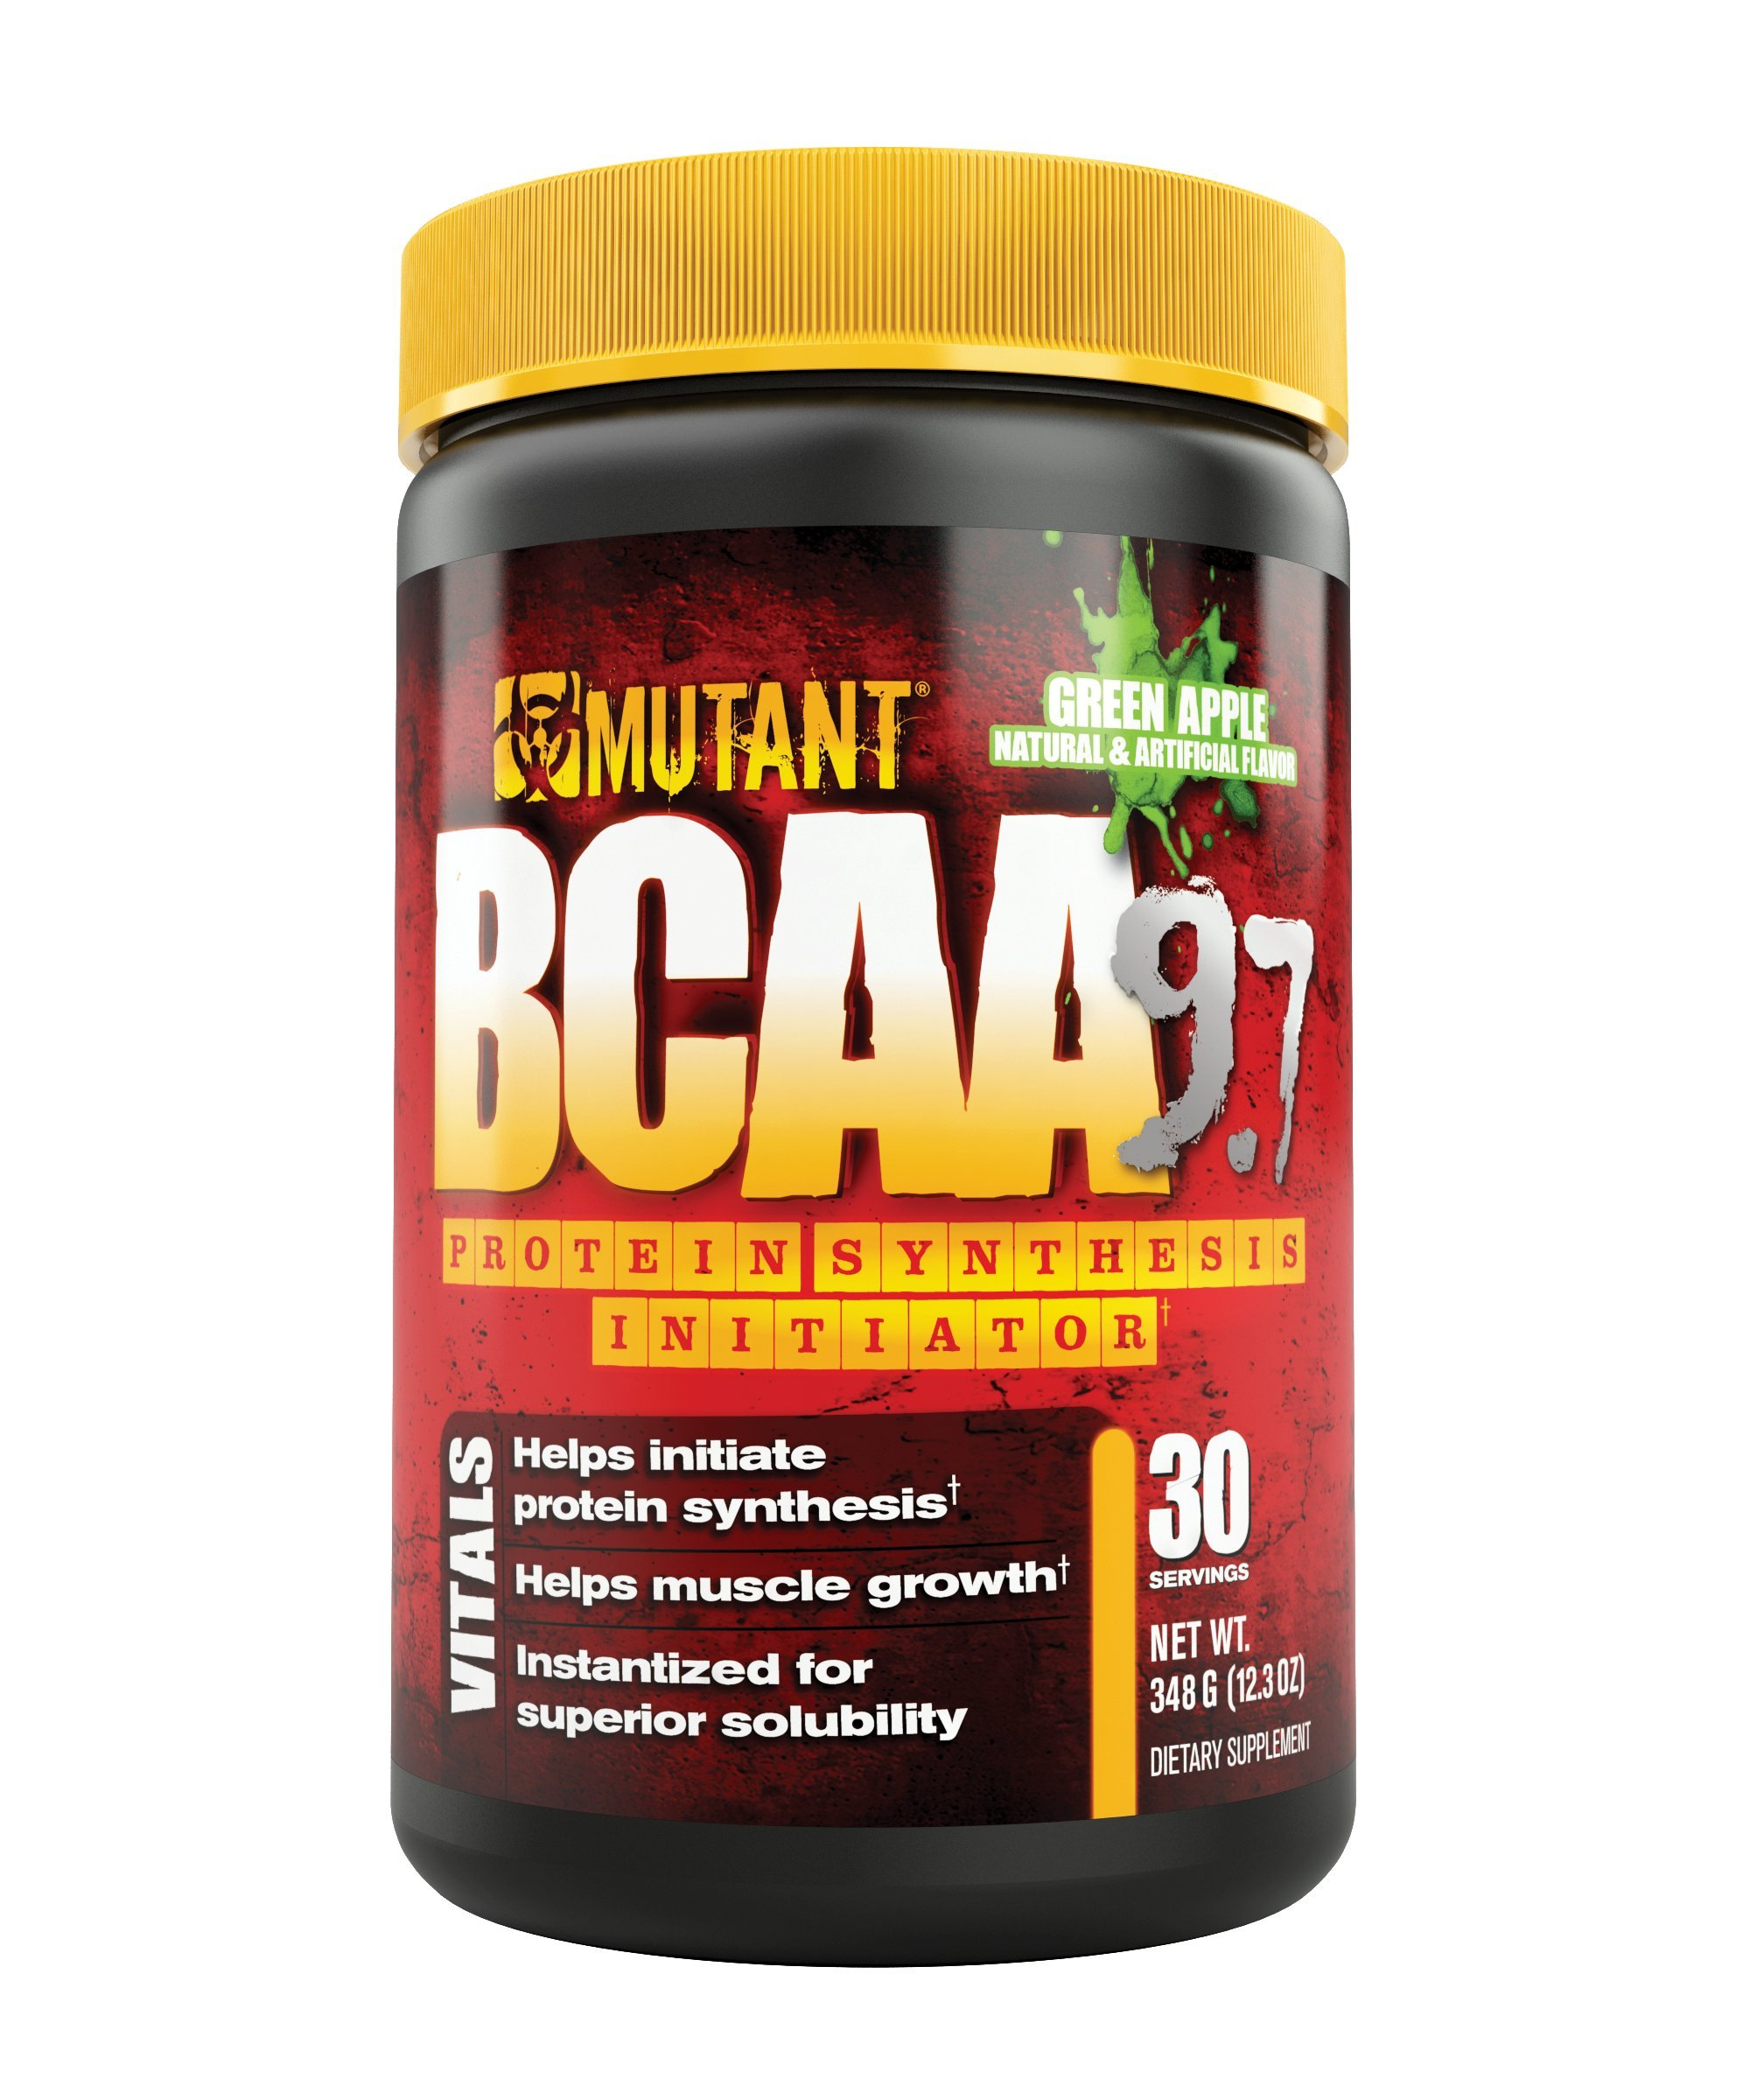 MUTANT BCAA Powder 9.7, Branched Chain Amino Acids with L-Arginine & Electrolytes for Muscle Building and Nitric Oxide Enhancement, Green Apple, 30 Servings